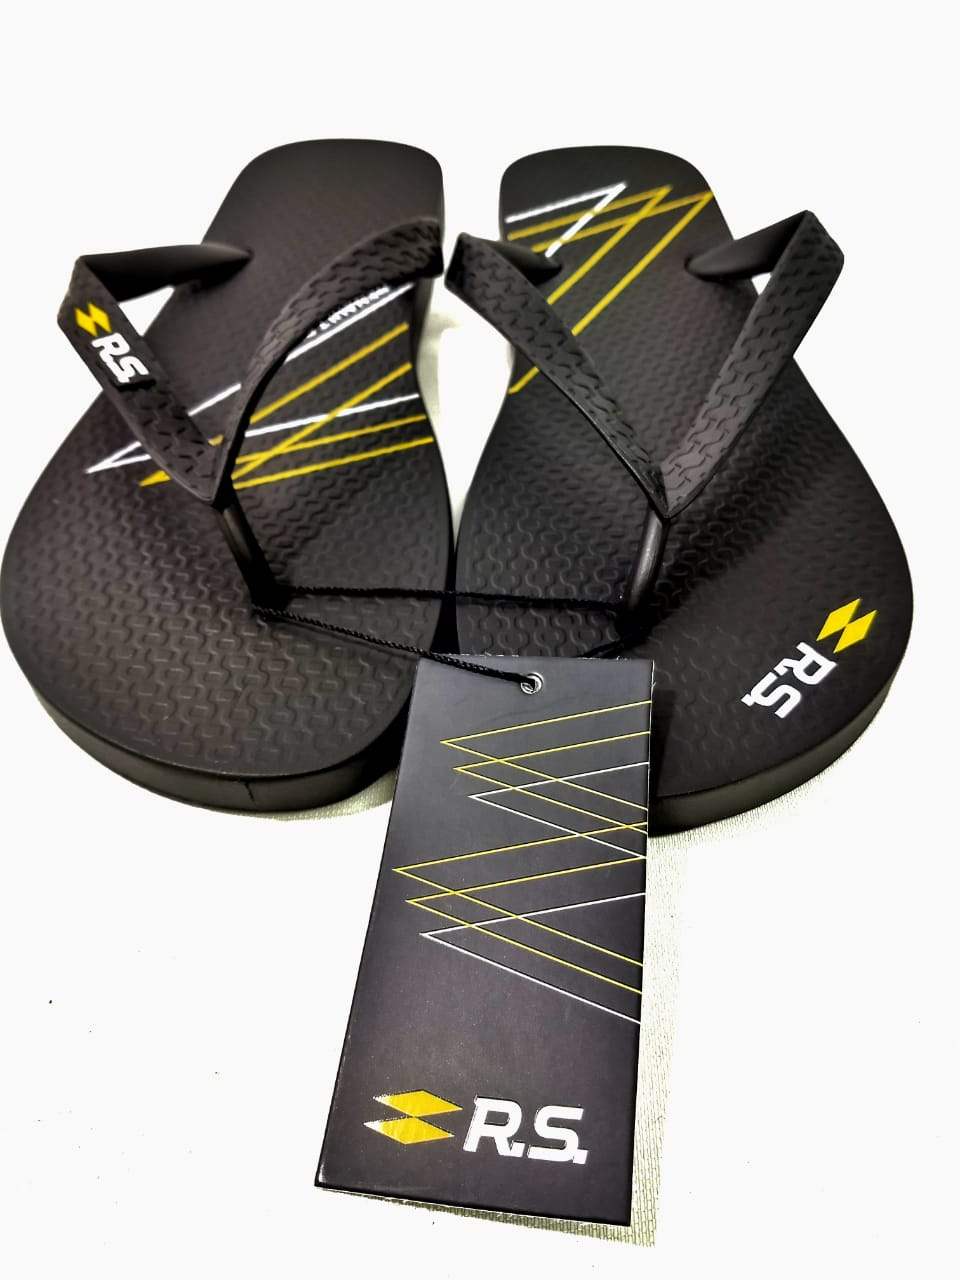 Chinelo New Graphic Renault RS 41-42 - Chinelo - Preto - UNI